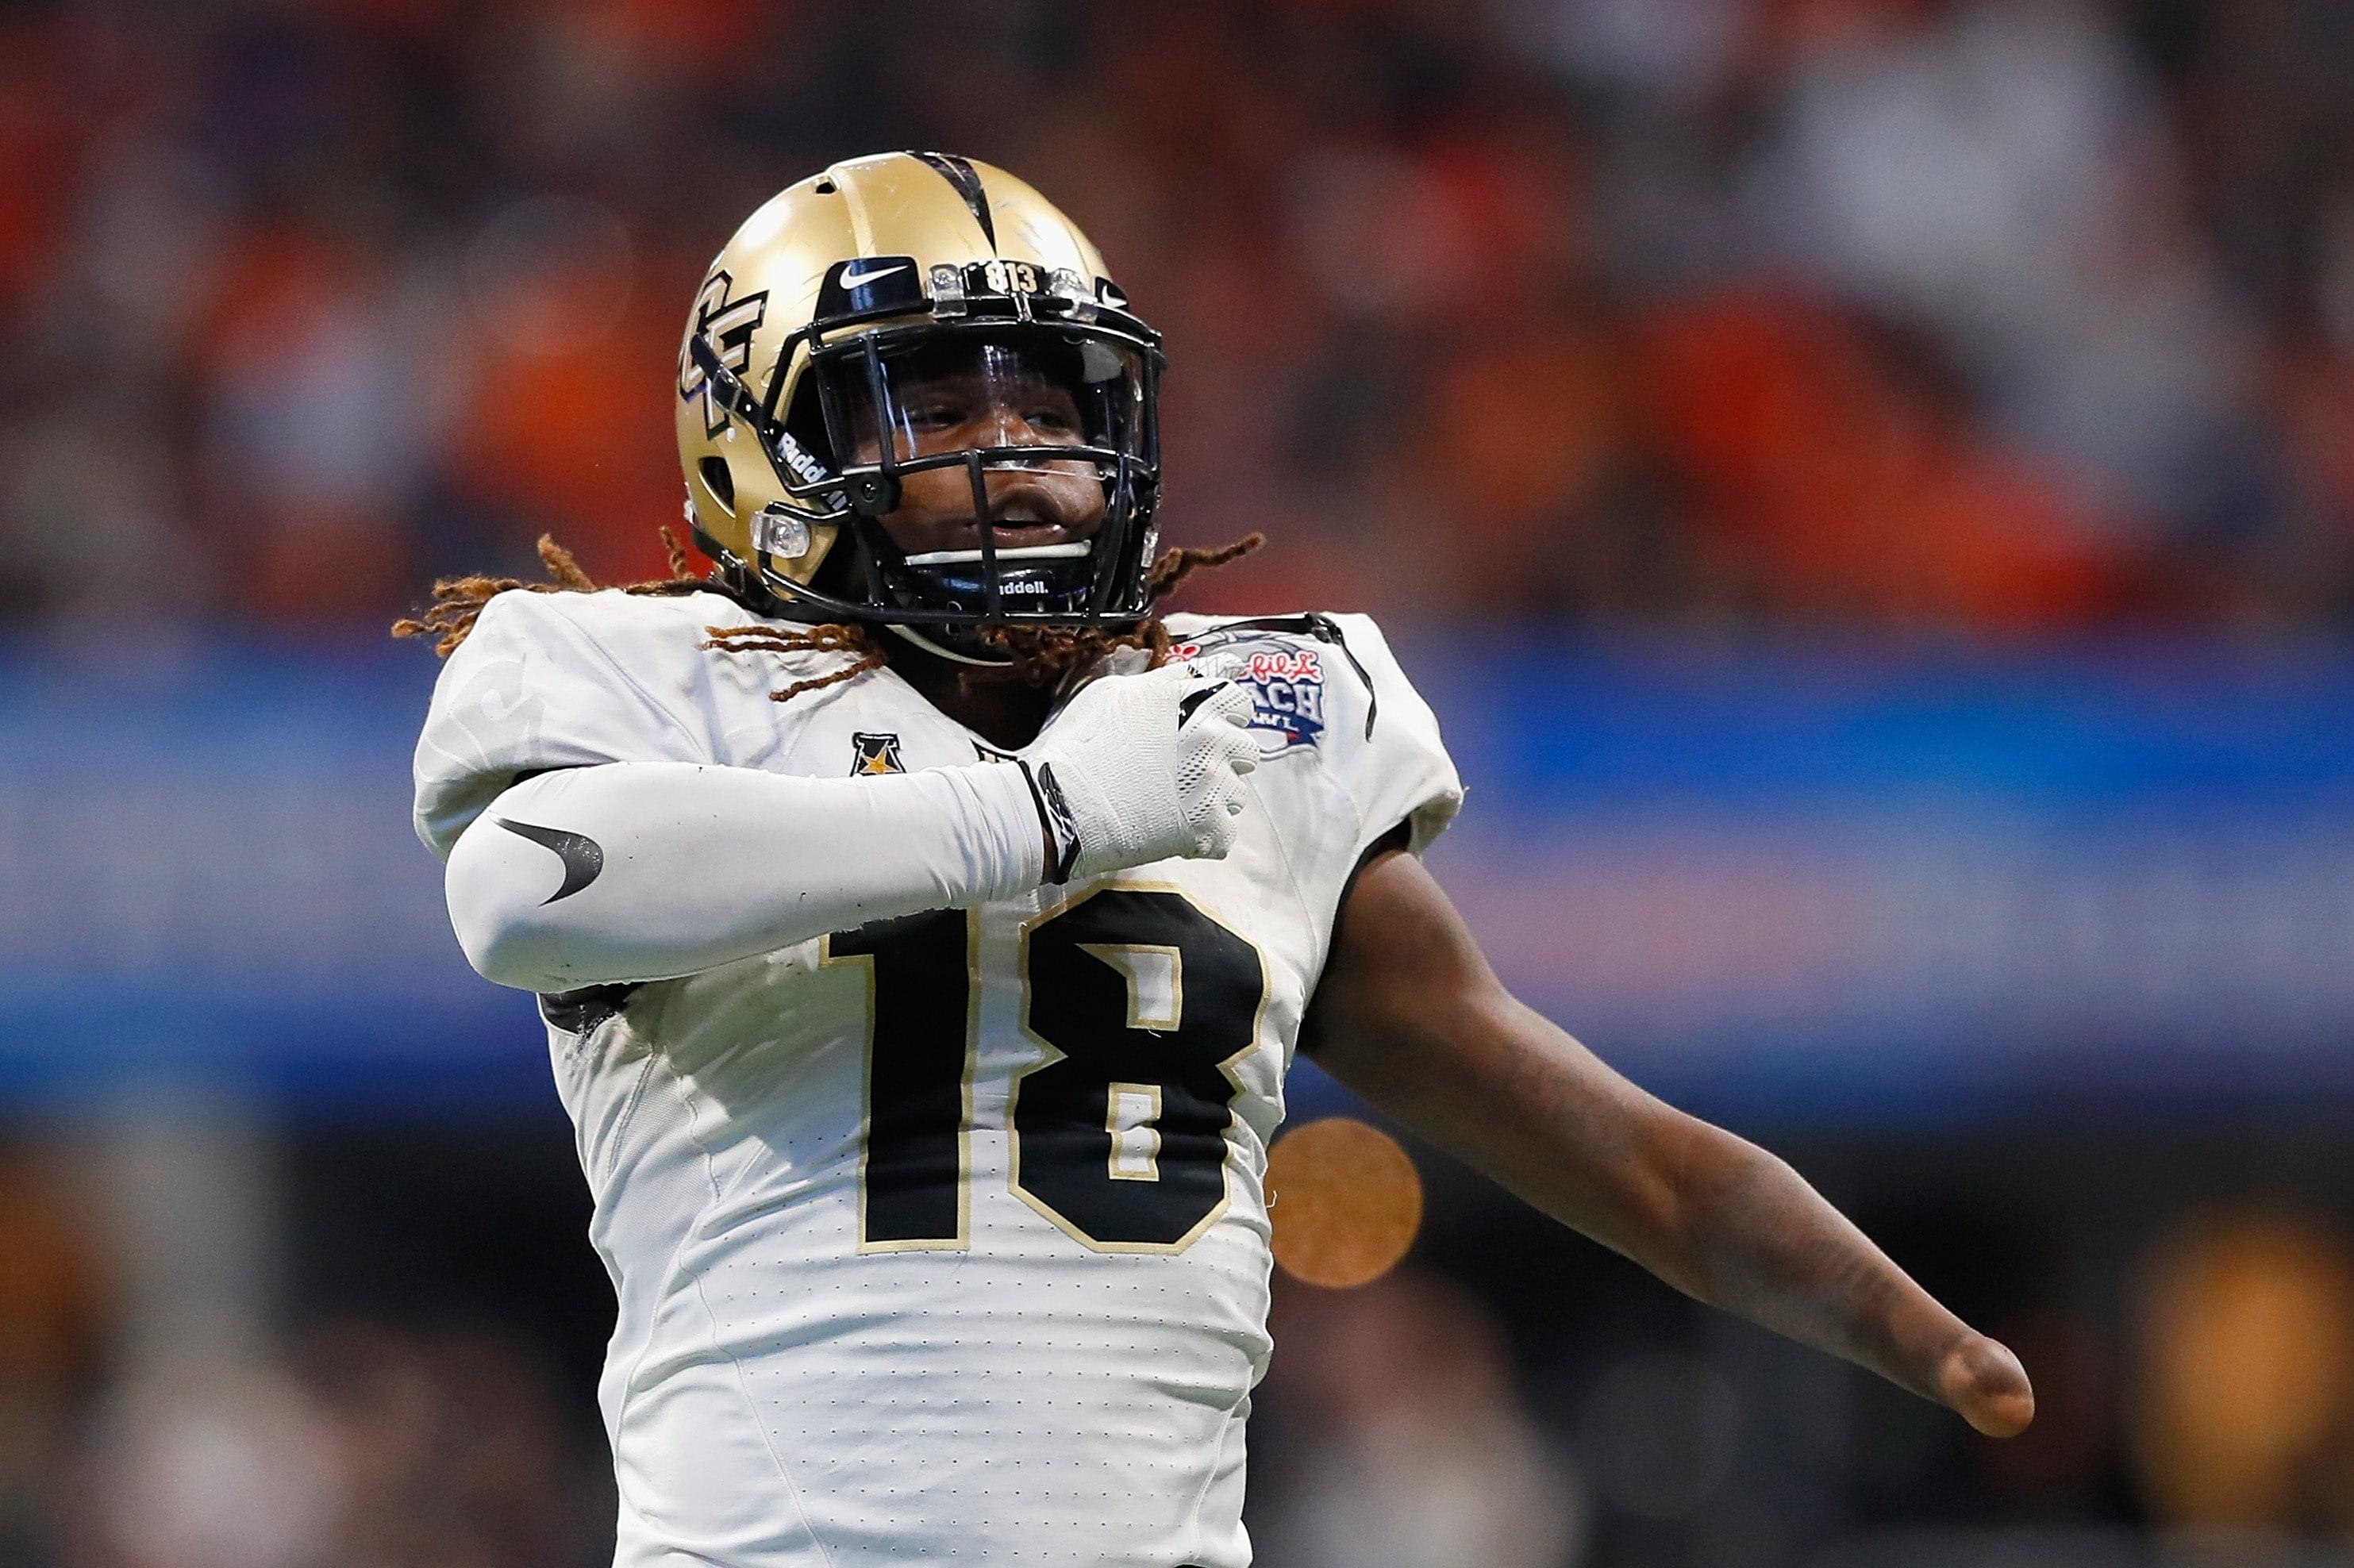 Shaquem Griffin was Peach Bowl Defensive MVP against Auburn